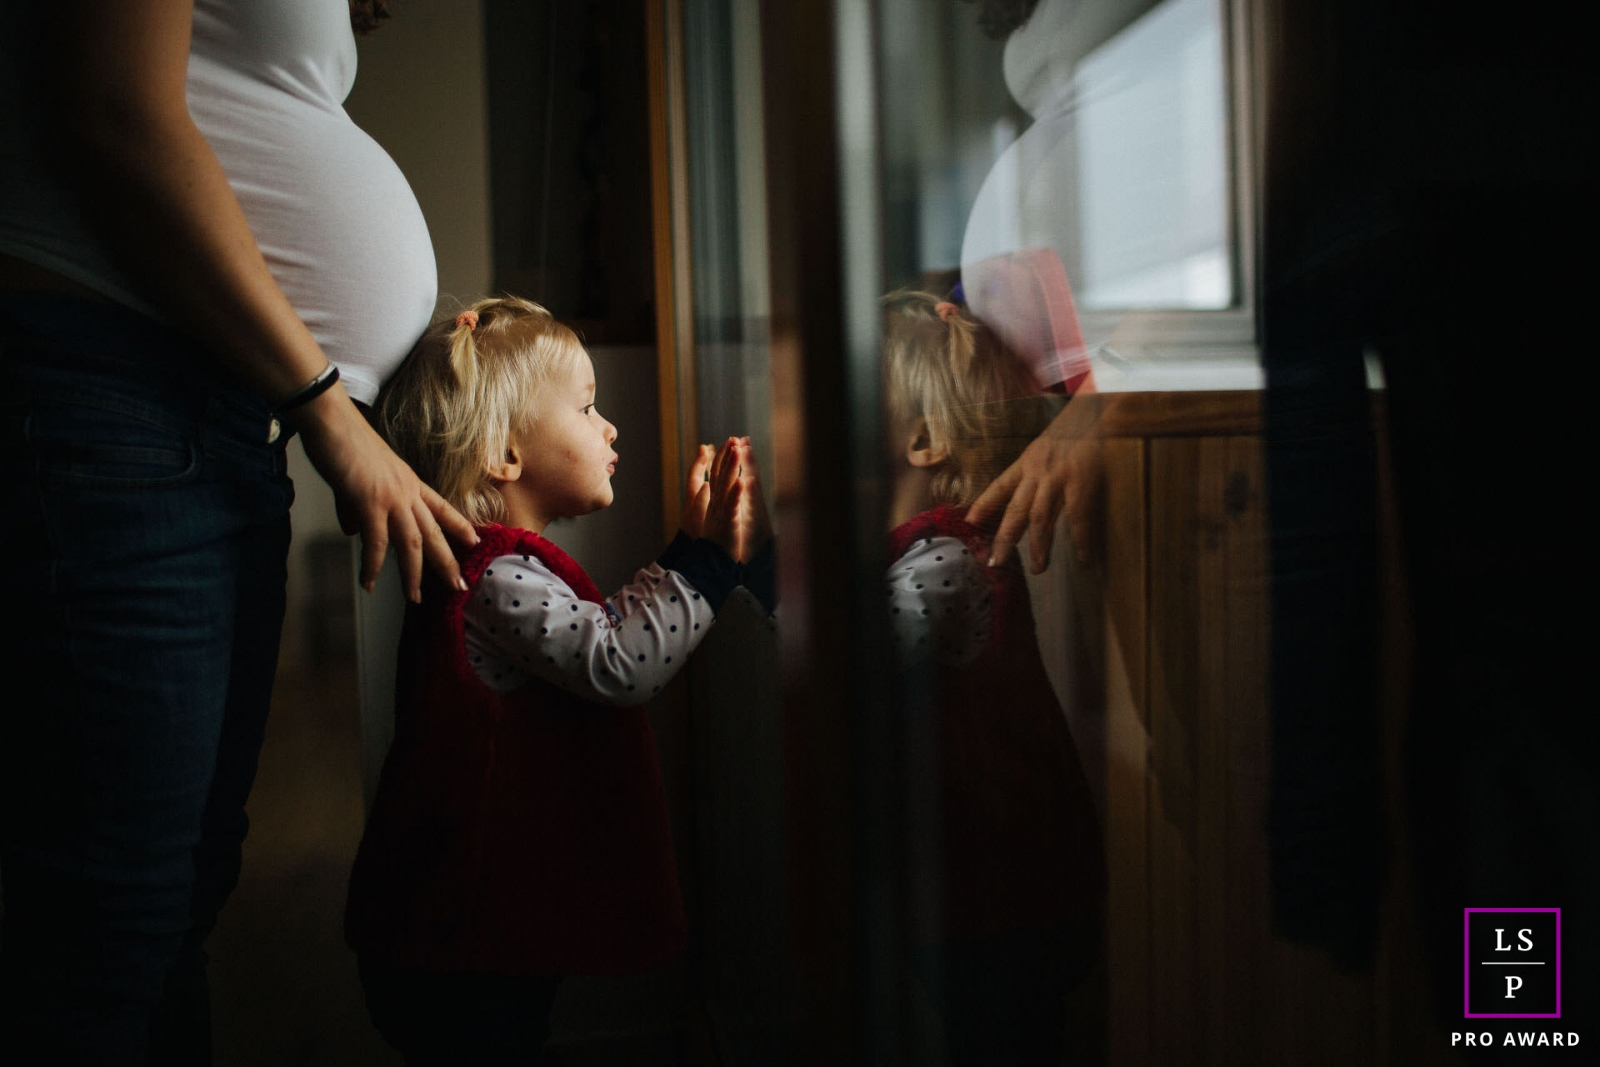 Family Photography for Warsaw Mazowieckie - Lifestyle Portrait contains: mother, pregnant, girl, window, reflection, home, indoors